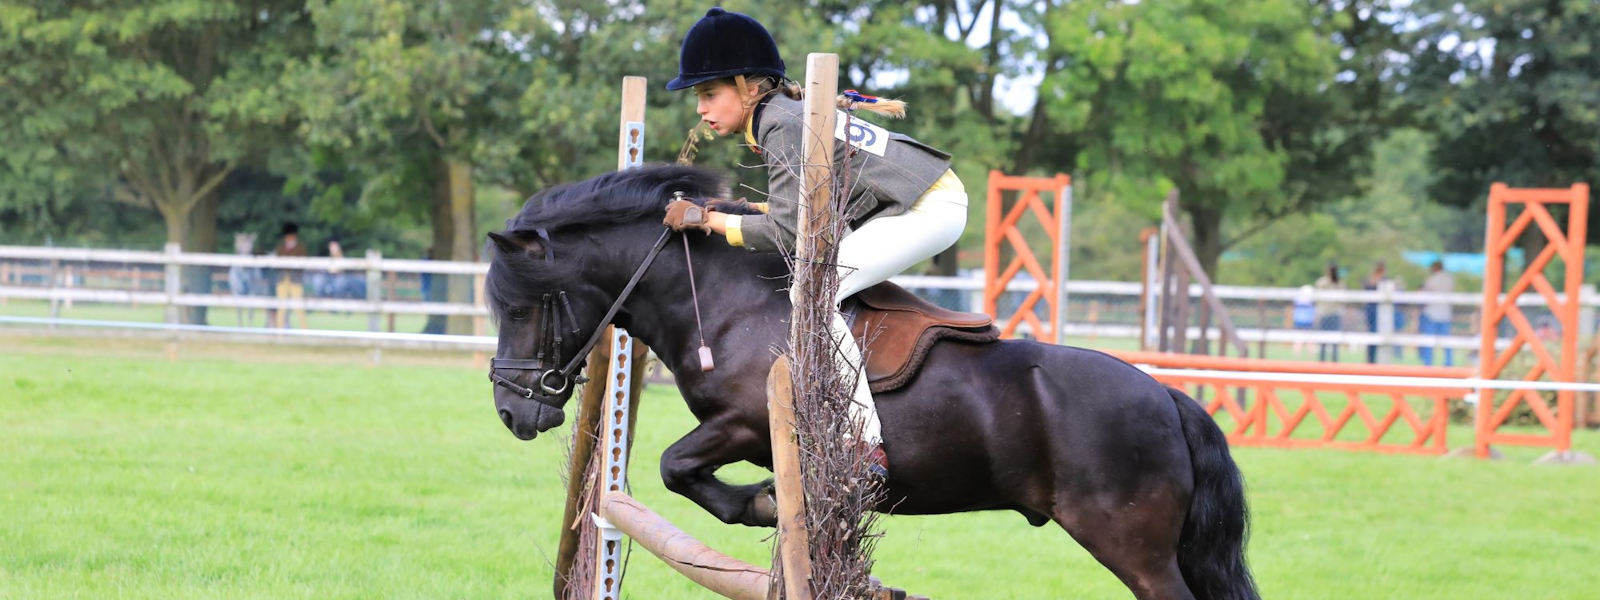 Pony Tack Saddle Pad Specialist Of In Hand And Ridden Show Tack And Pony Schooling Equipment